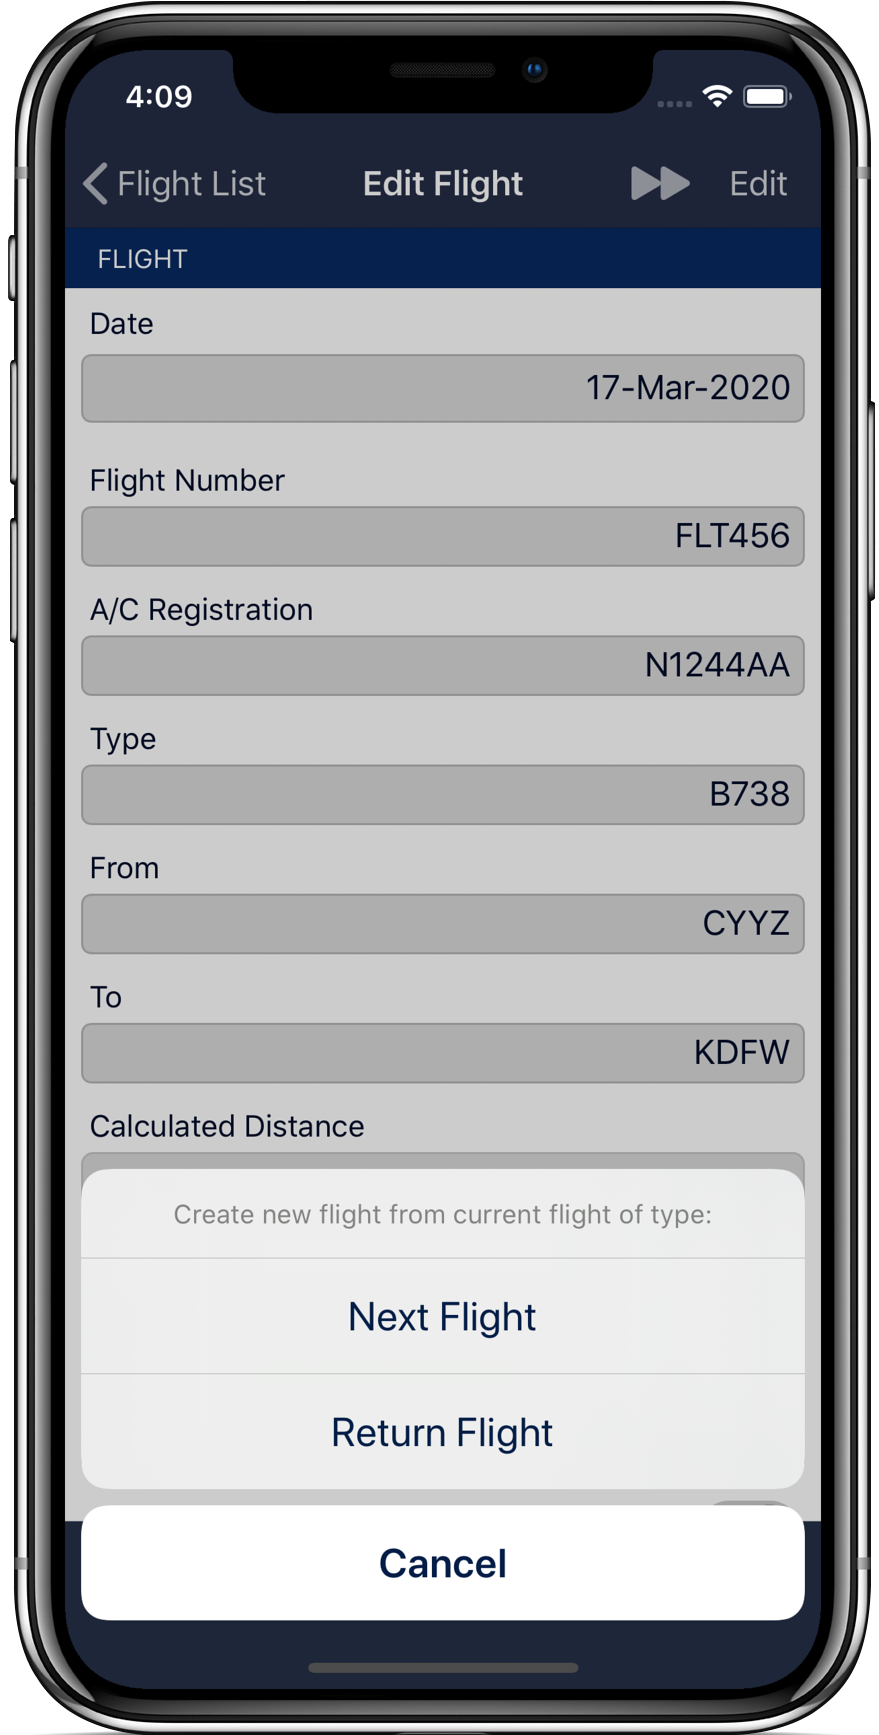 Next flight and return flight feature to pre-fill your next flight